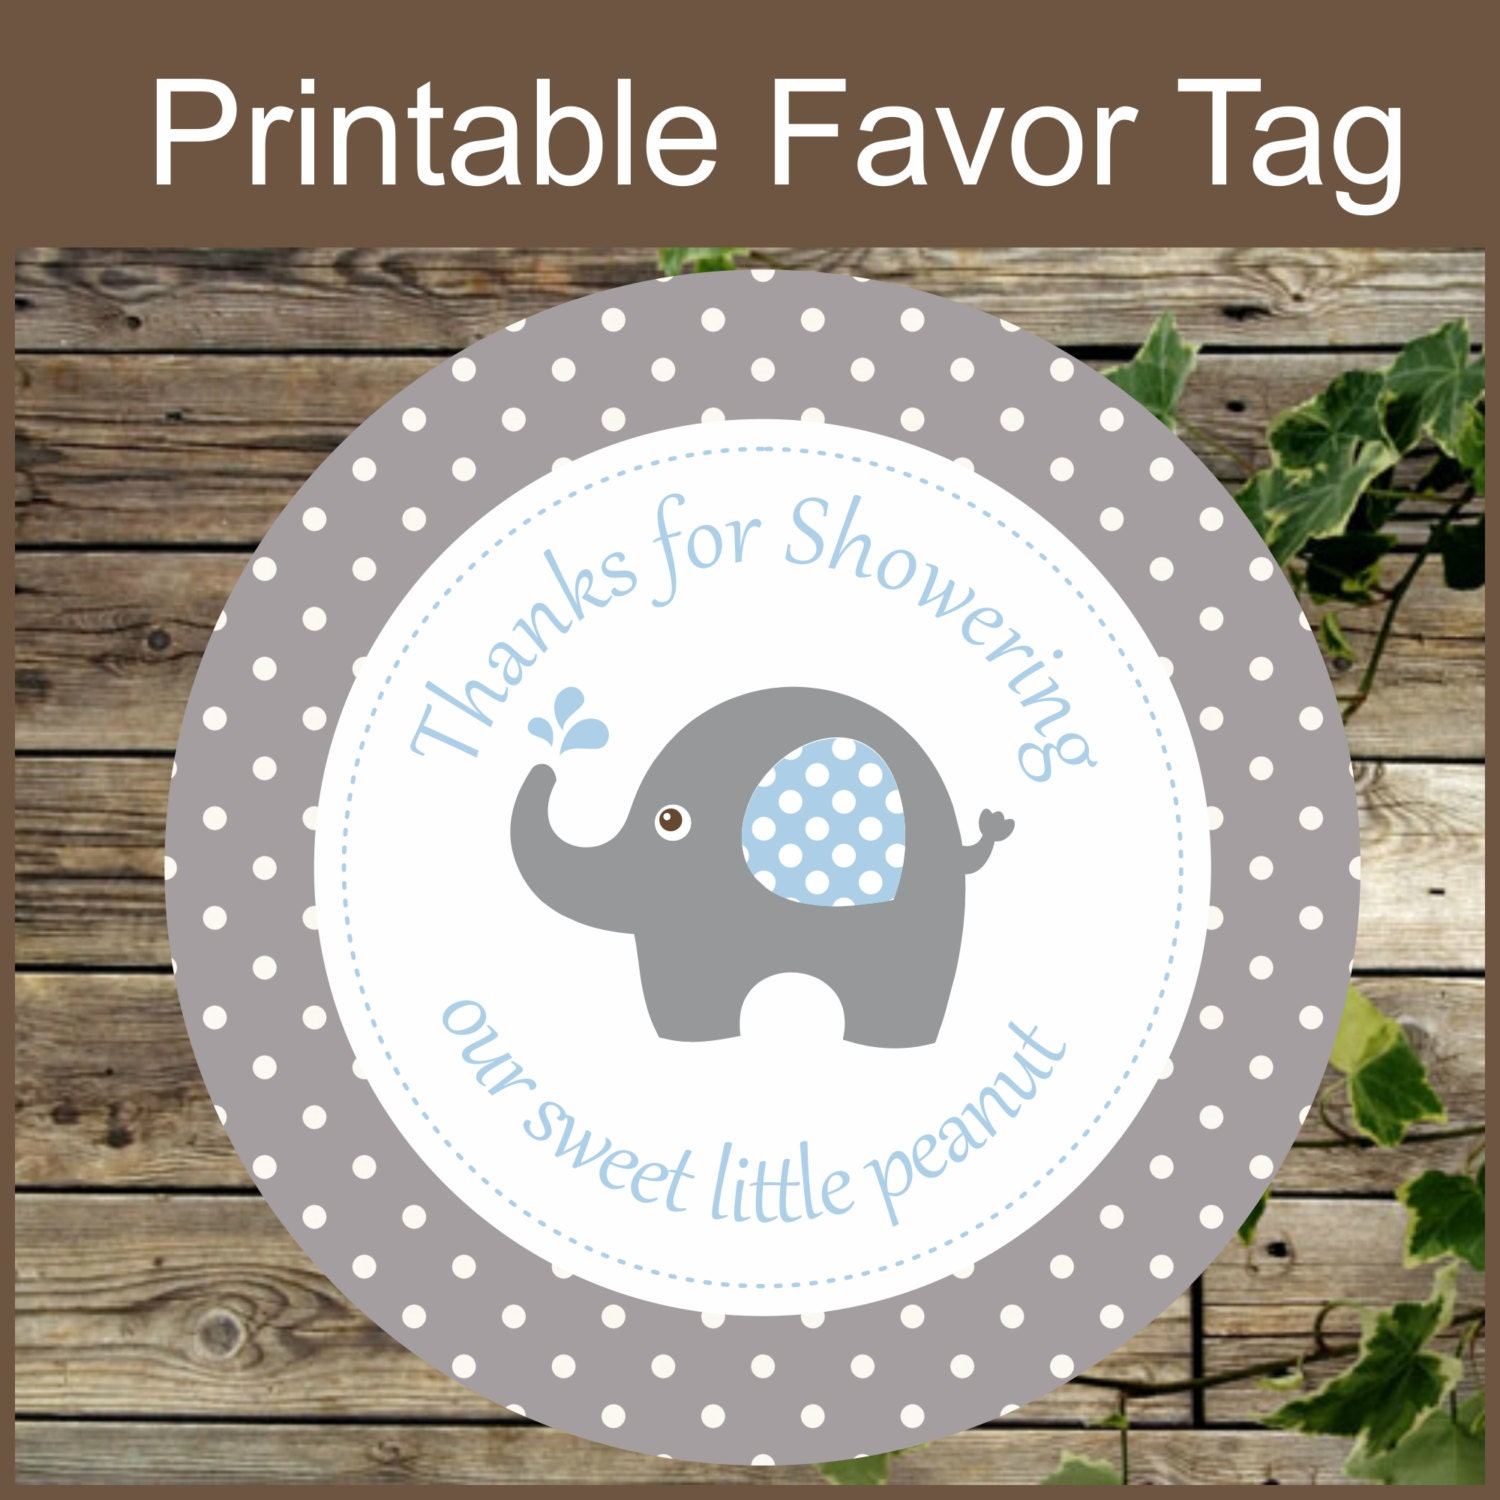 Baby Shower Gift Tags Printable Free: Elephant Favor Tags Grey And Blue Baby Shower Favor Tags